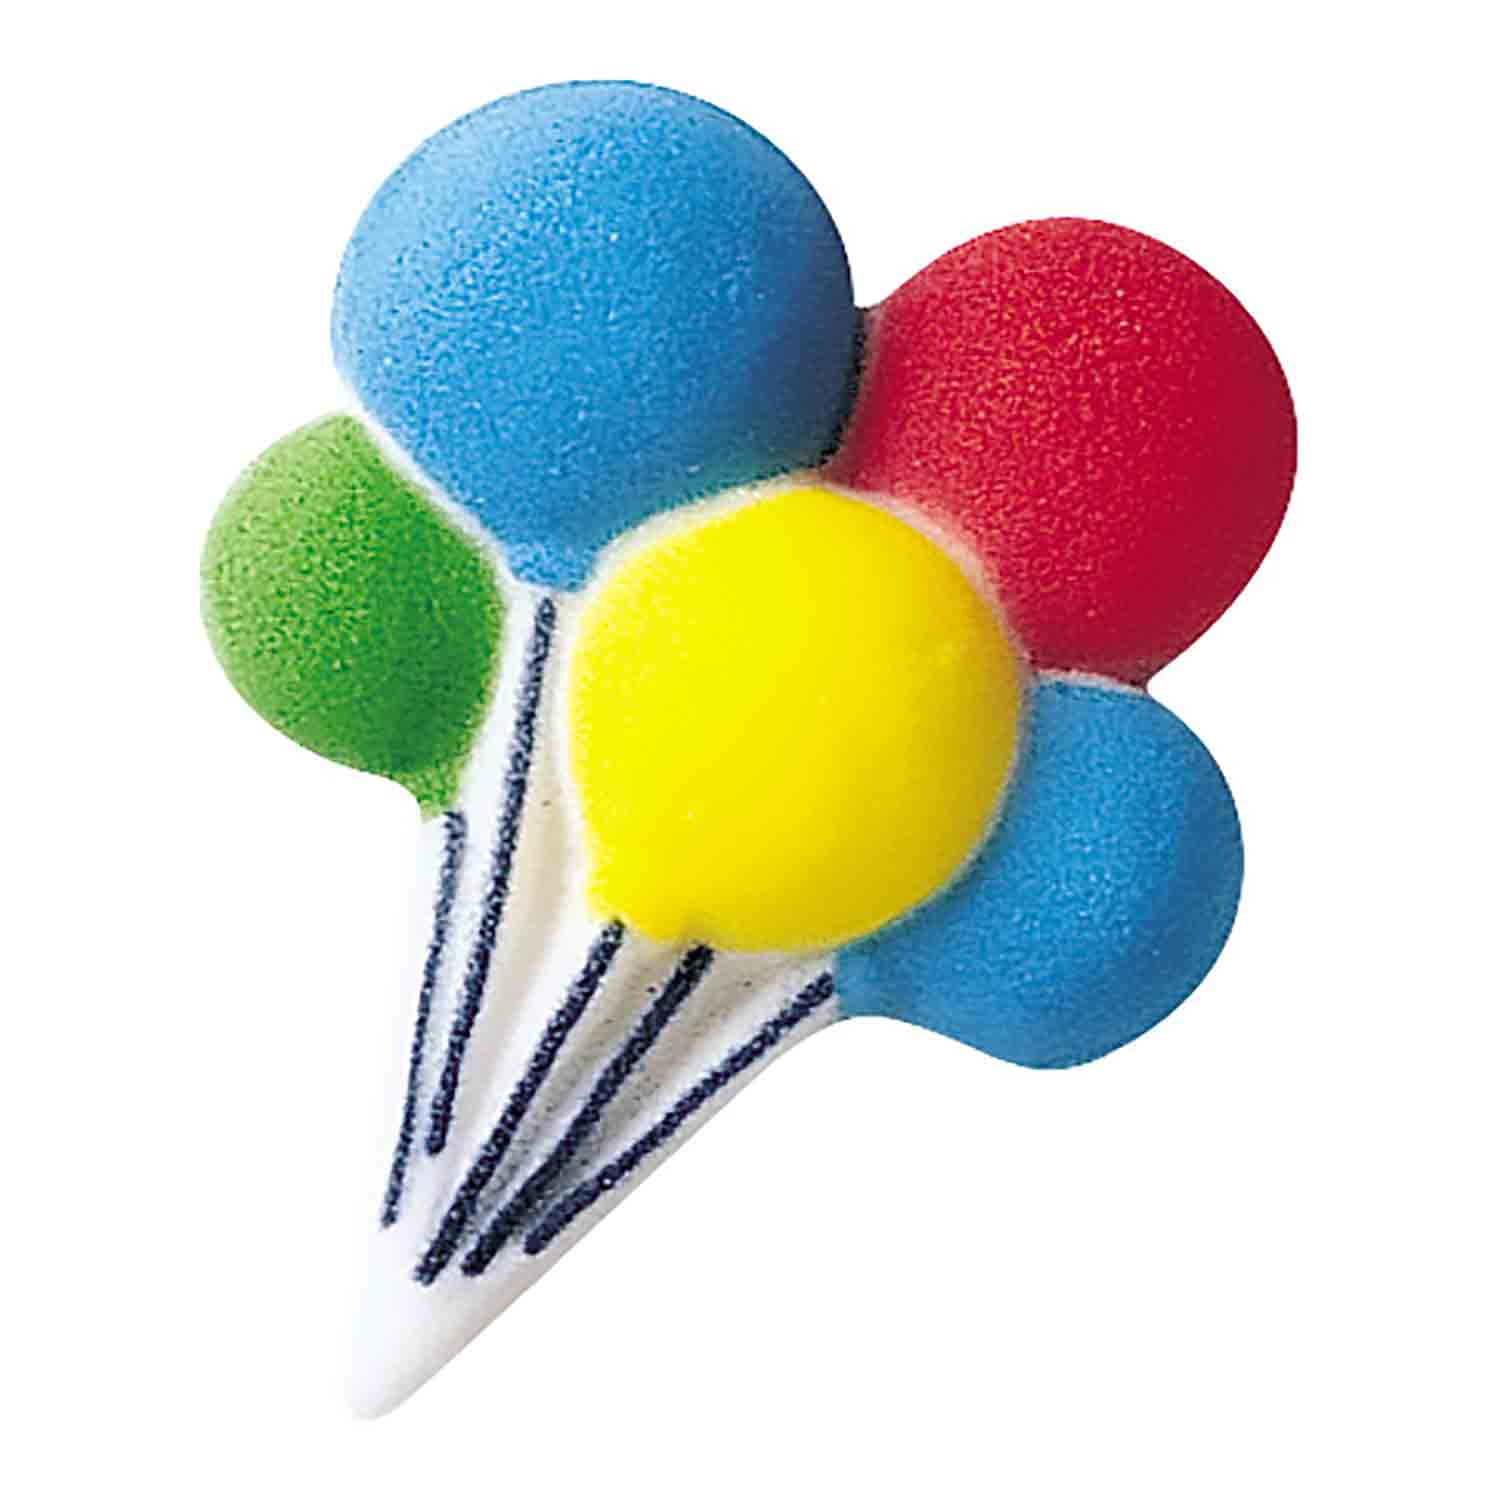 Dec-Ons® Molded Sugar - Balloon Clusters